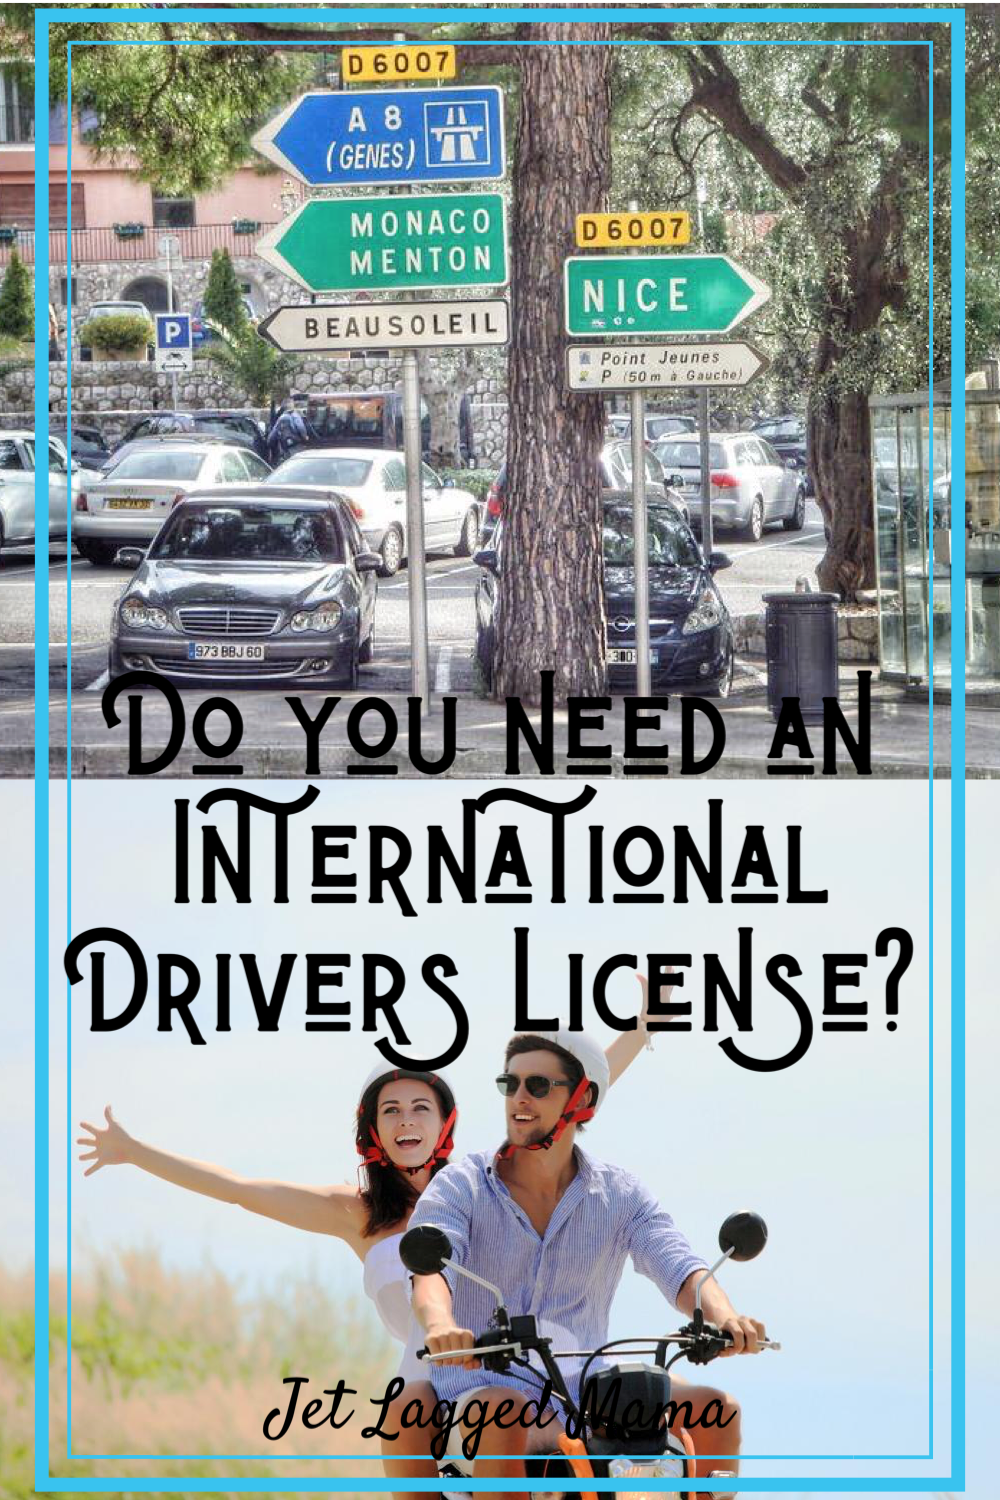 ed30f9579964d009ee0dbe593b37e128 - How To Get International Drivers License In Los Angeles